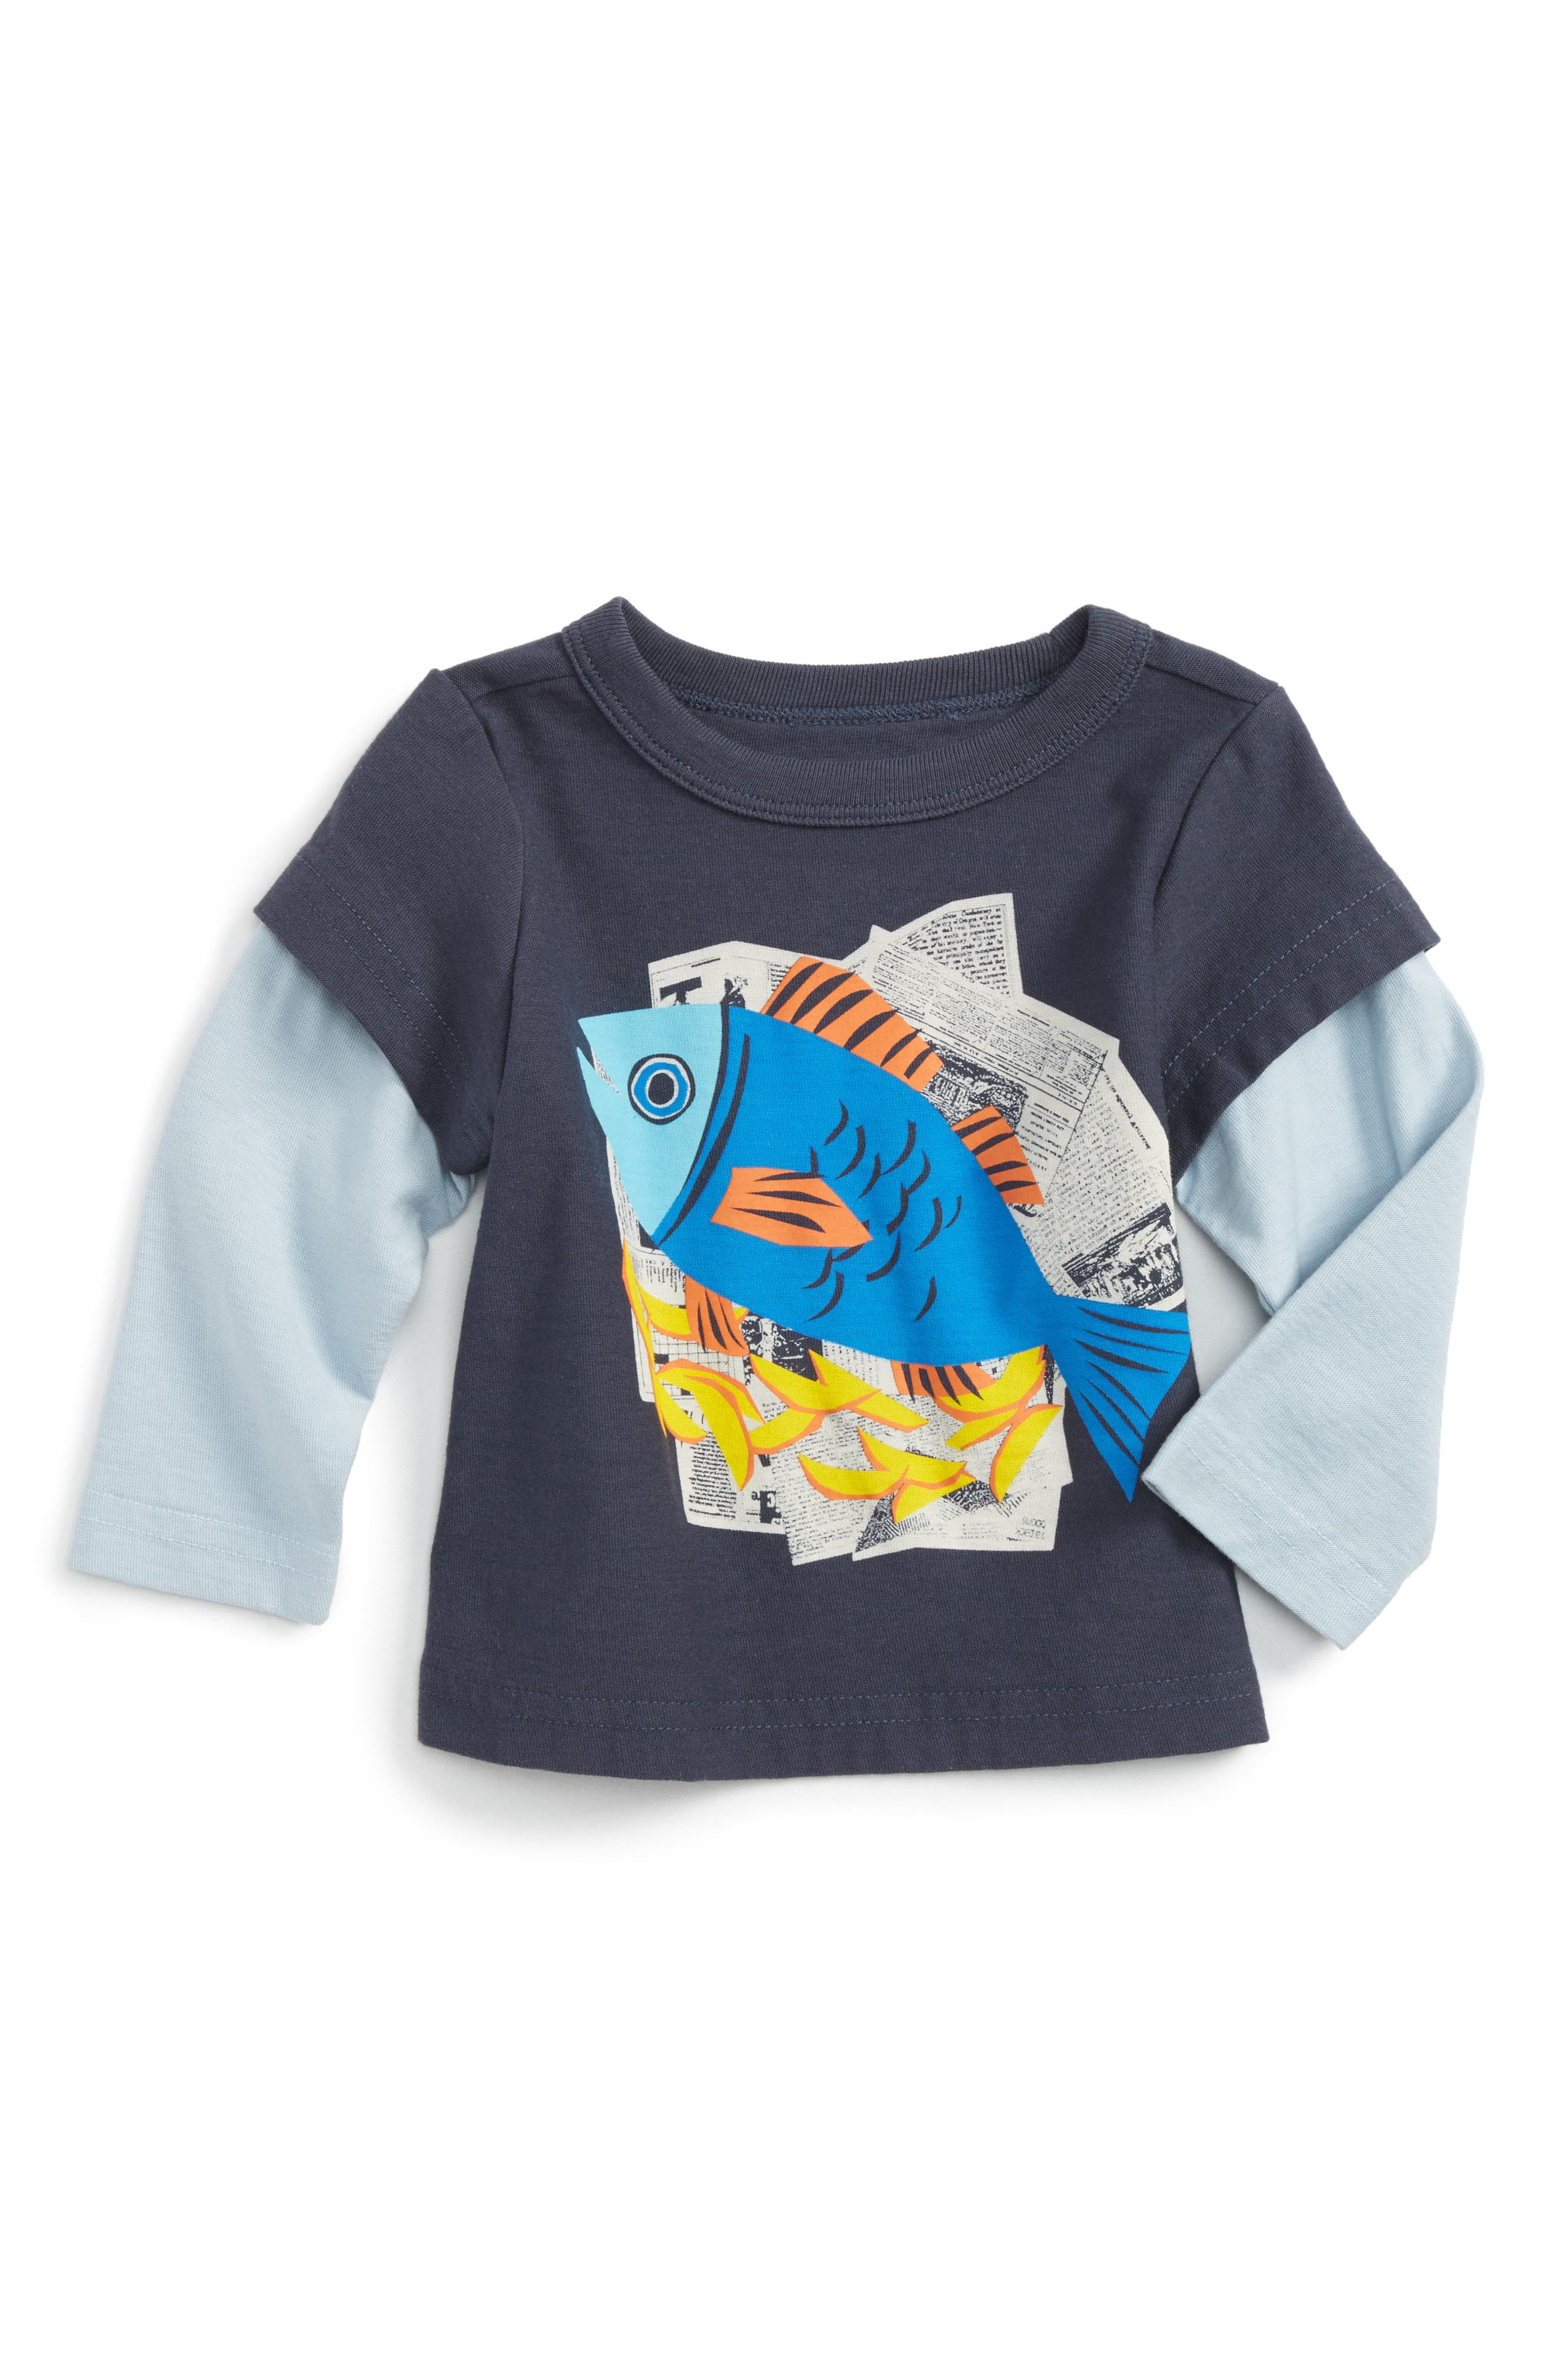 Alternate Image 1 Selected - Tea Collection Fish & Chips Graphic T-Shirt (Baby Boys)